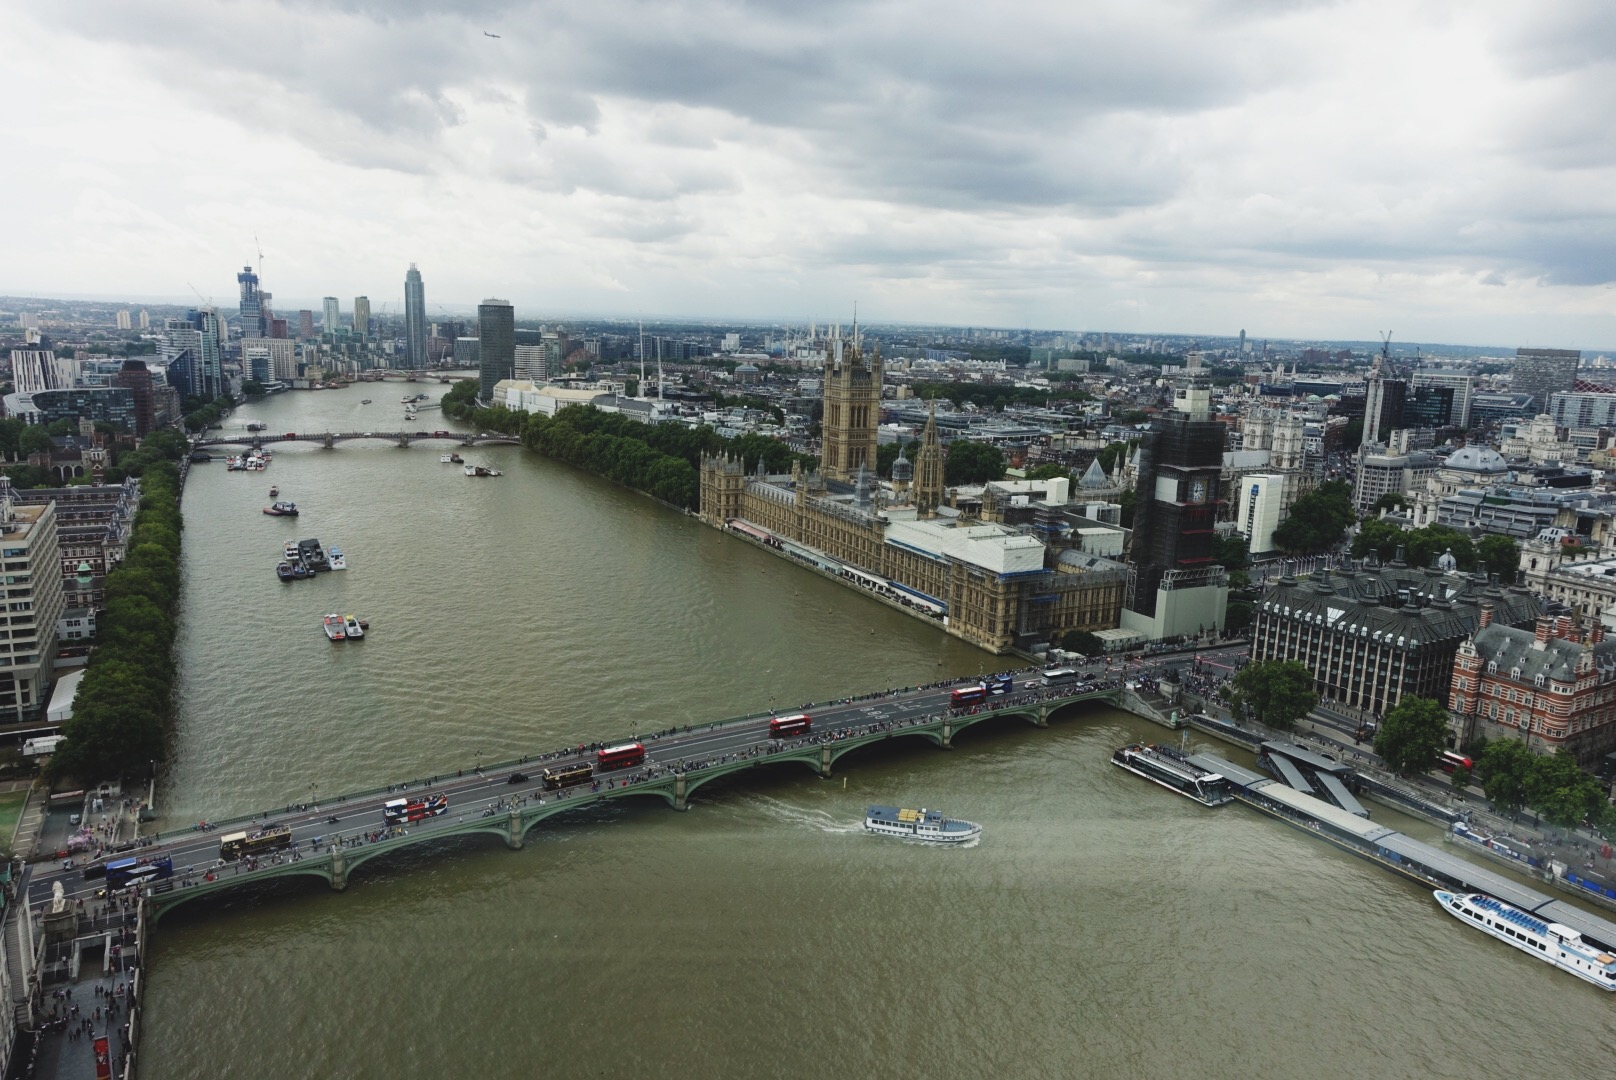 The Thames River, Parliament, and a row of double-decker buses. This might be the most London photo that ever Londoned.